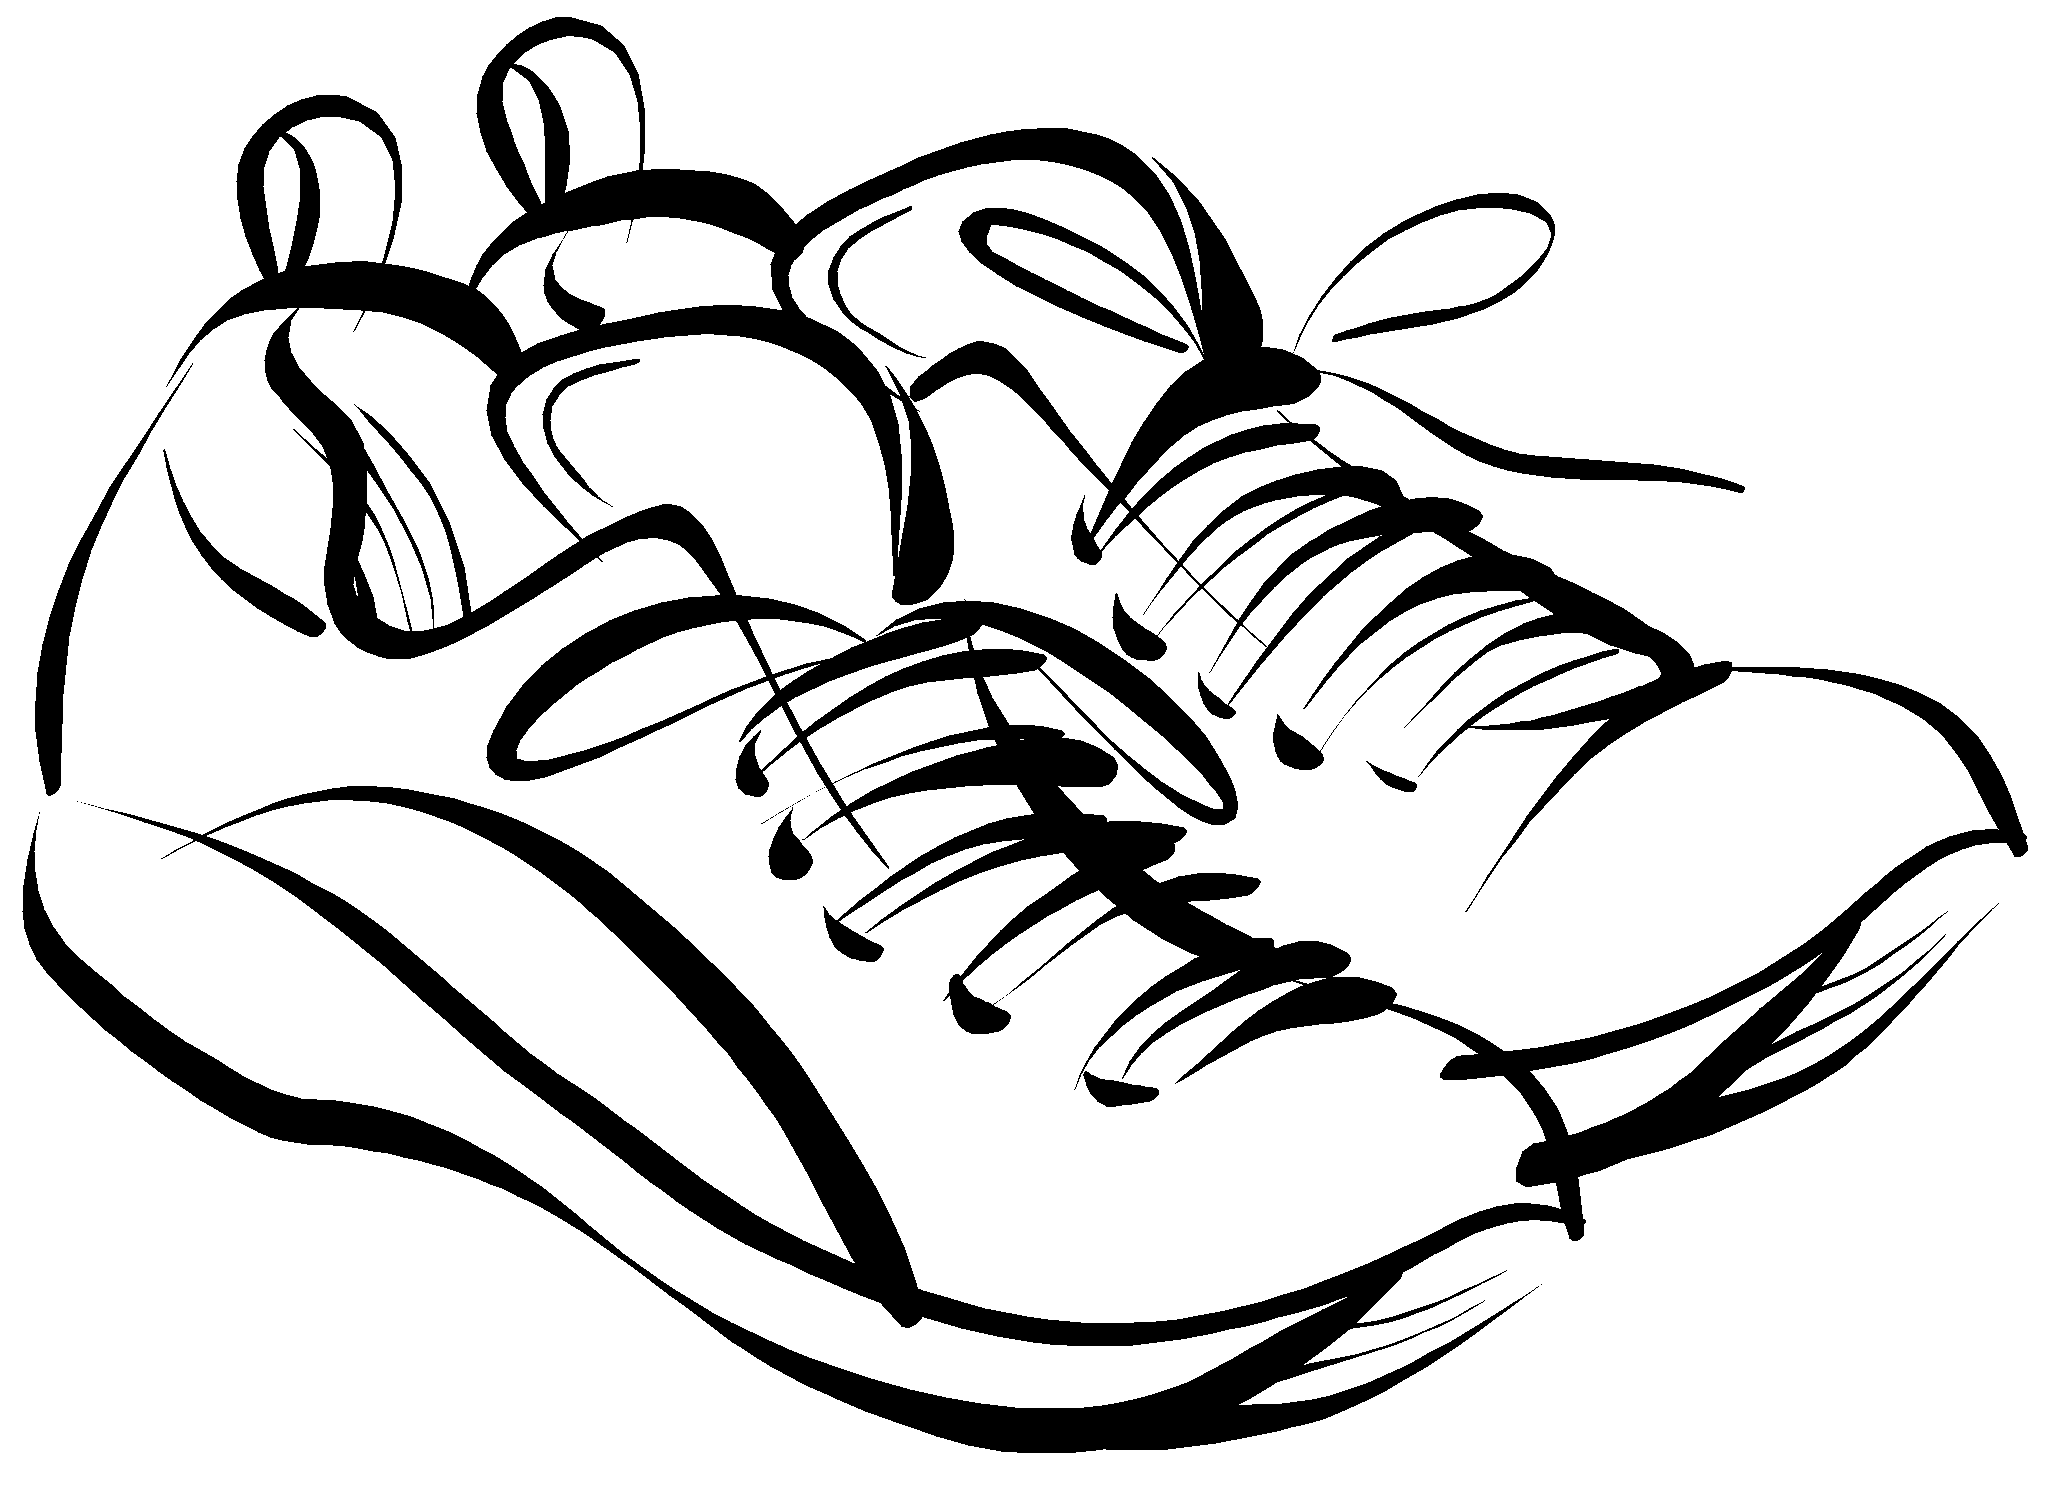 Tennis shoes clipart black and white free 4 2.